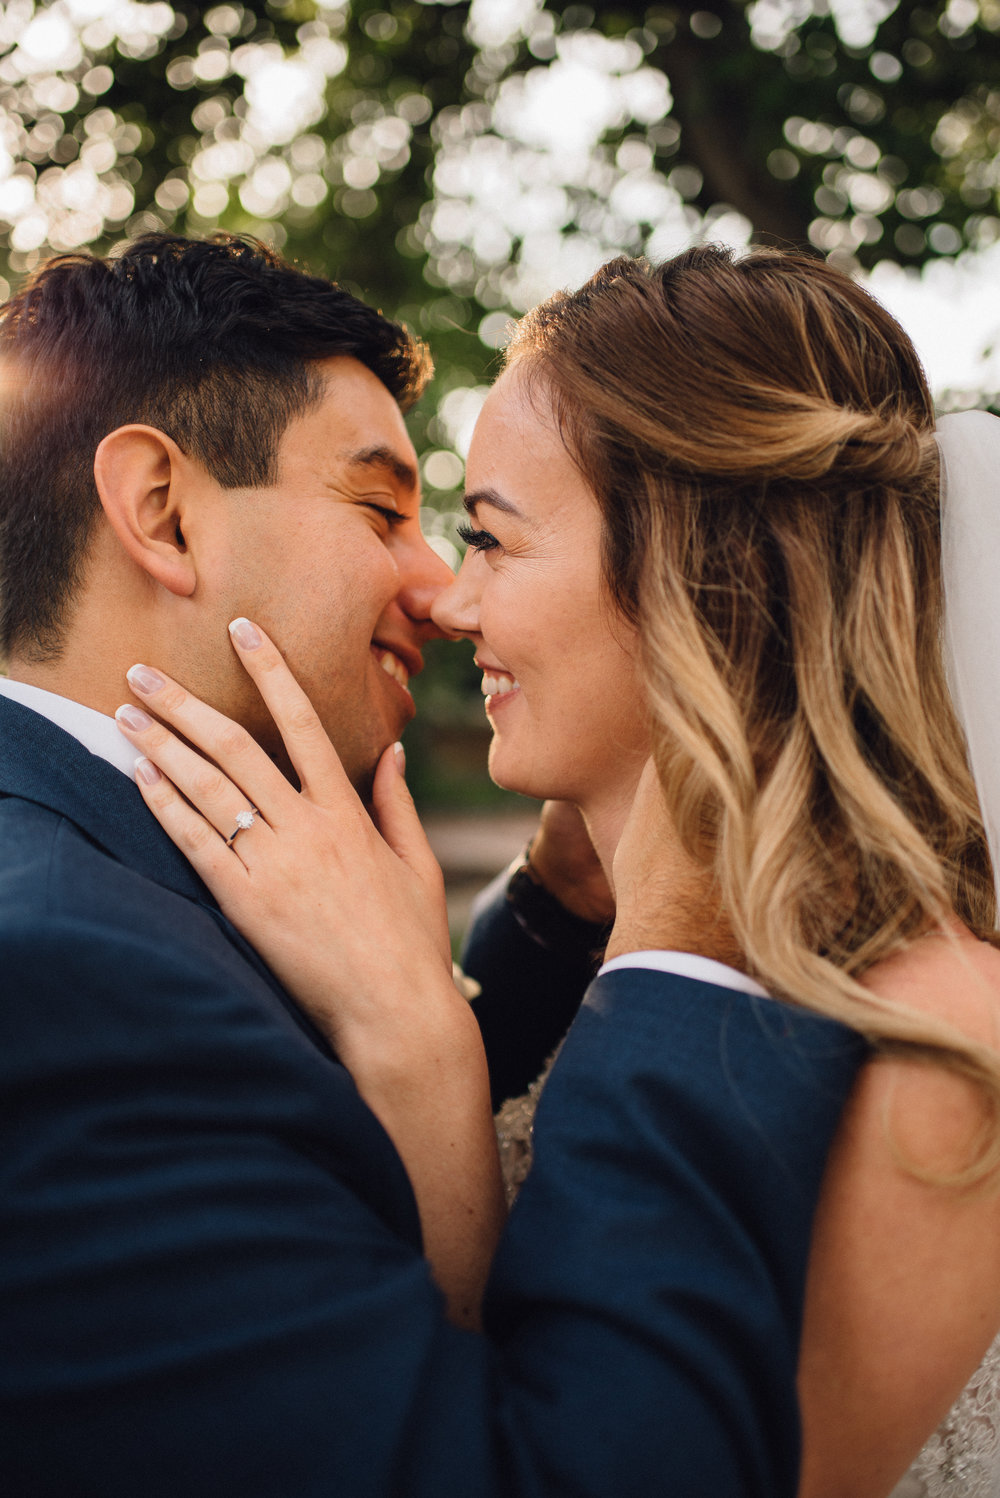 Irving & Katelyn - golden hour first look & indoor stringed light reception